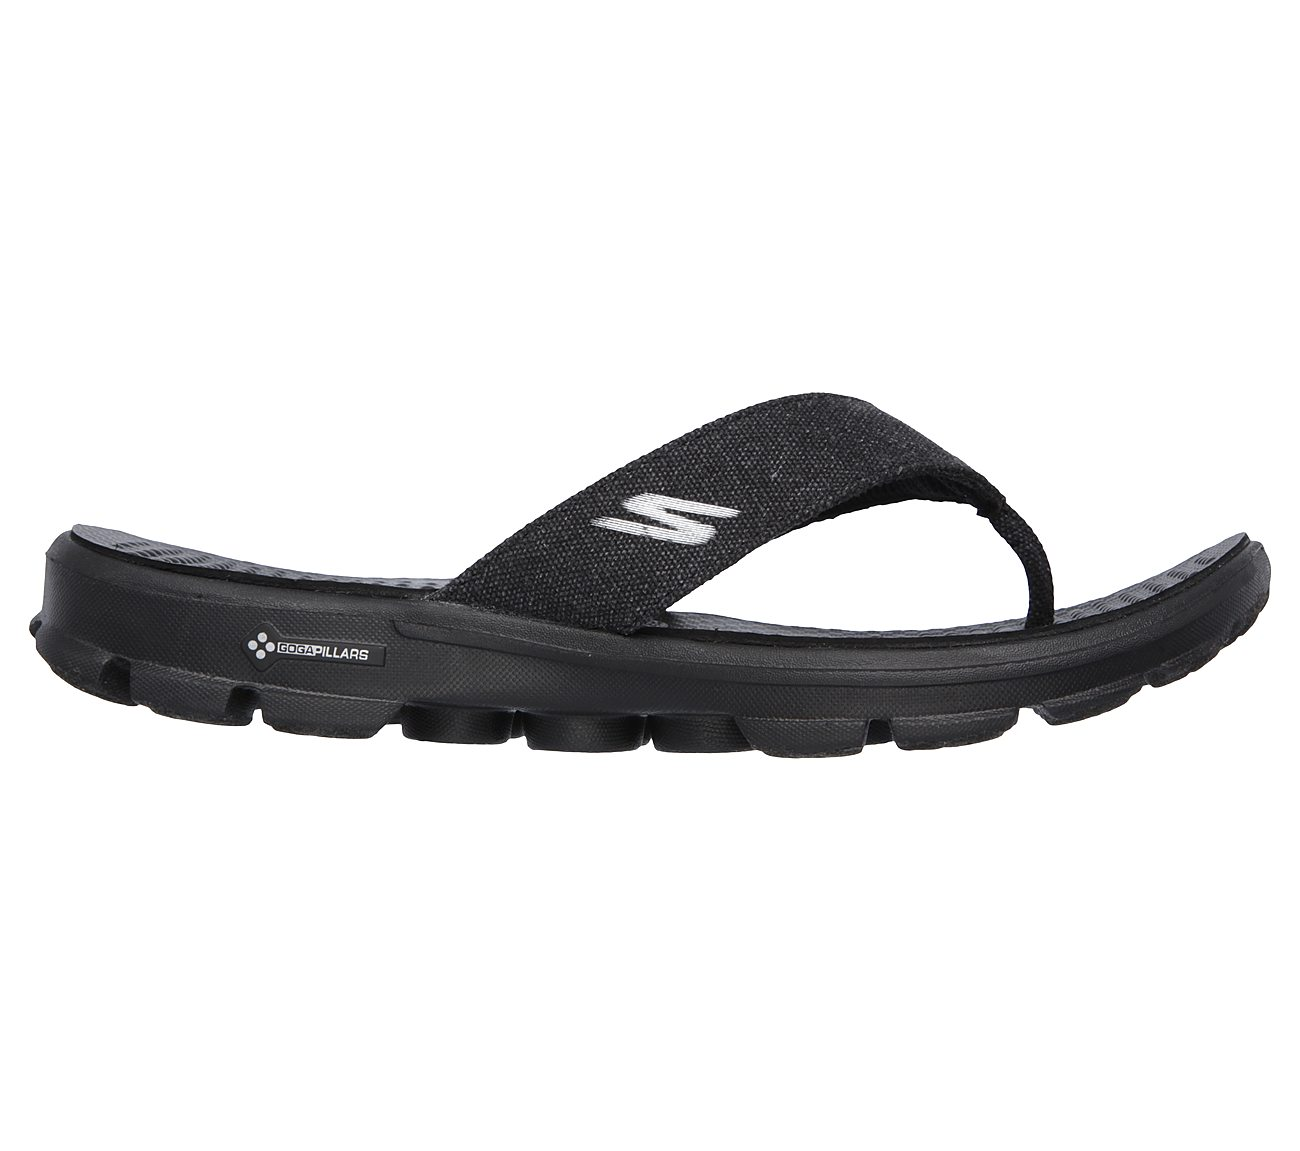 skechers yoga mat sandals. hover to zoom skechers yoga mat sandals d